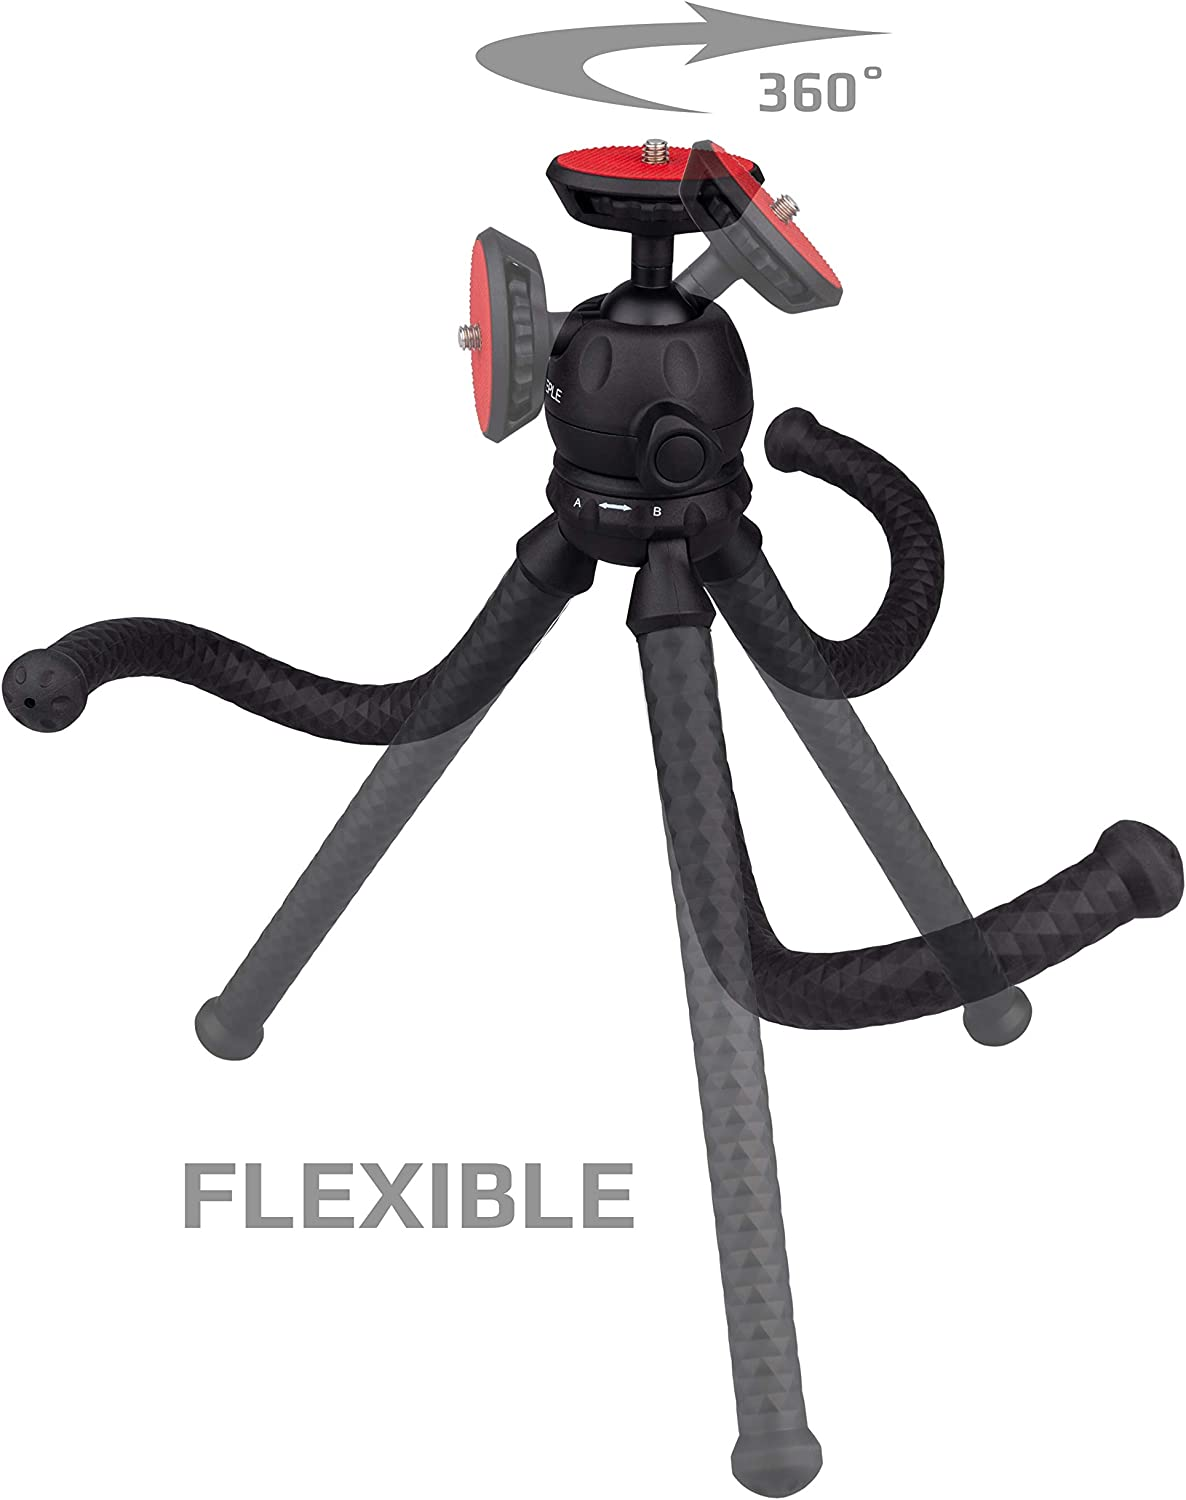 X-T30 Action Cam Monopod Stand for DSLR Compact Camera X-E3 Universal Travel Hand Held Grip Smartphone X-T100 X-T20 Mini Flexible Tripod compatible with FUJIFILM X-T3 X-T2